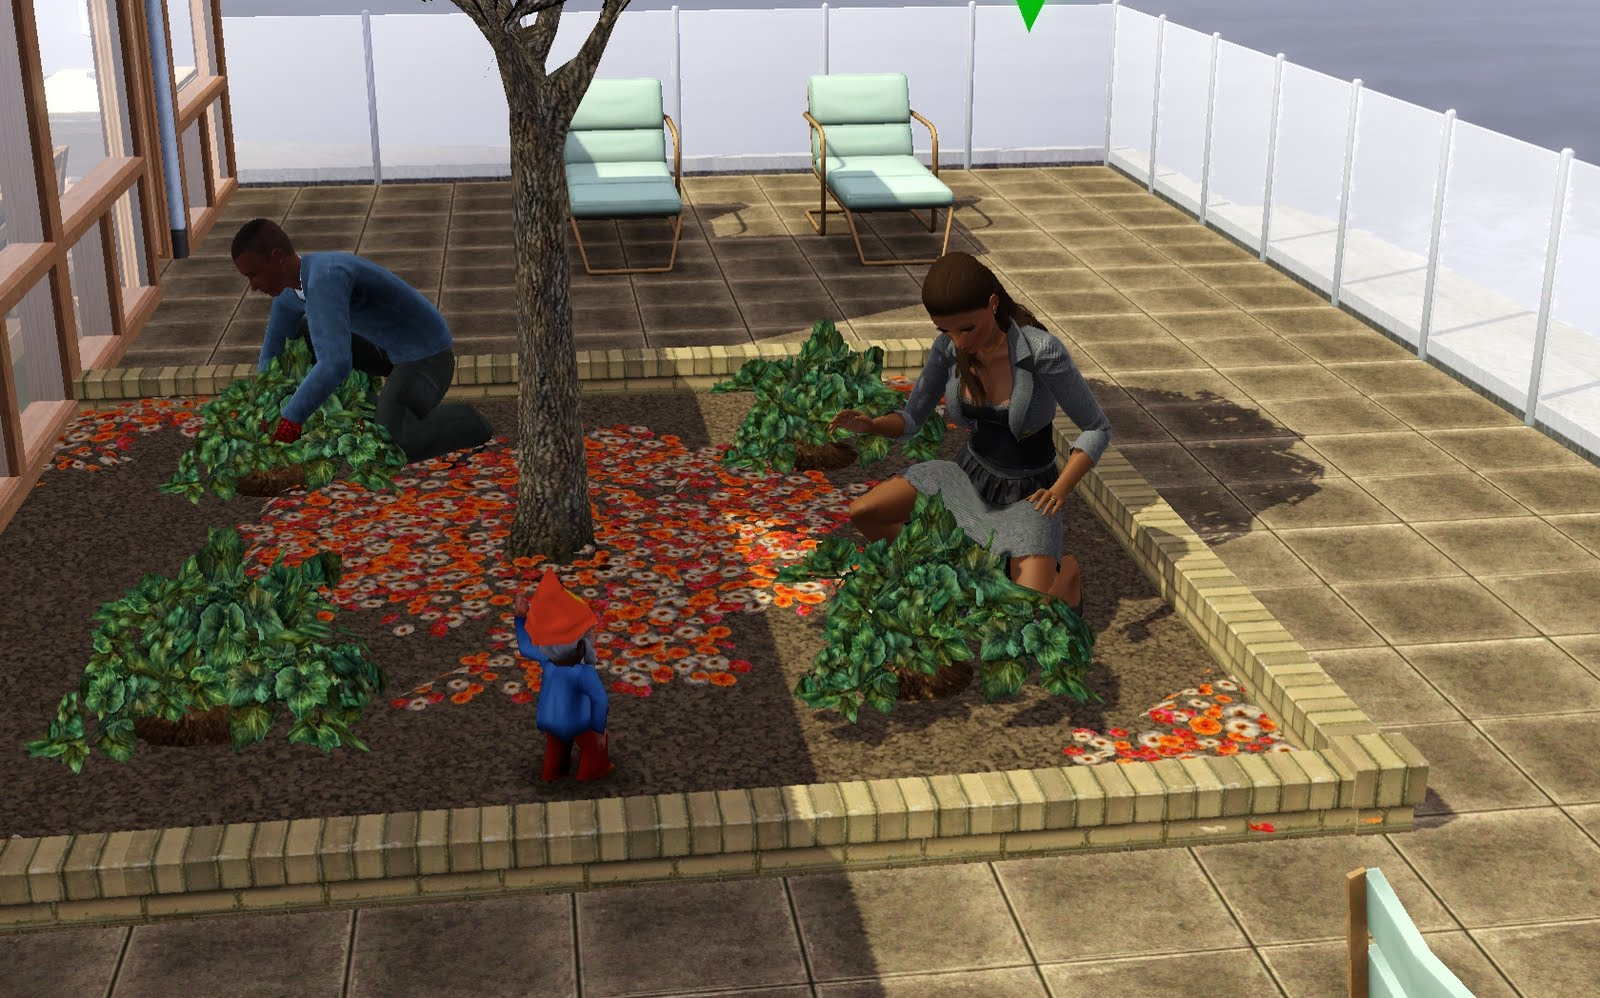 Summer S Little Sims 3 Garden How To Build A Rooftop Or Balcony